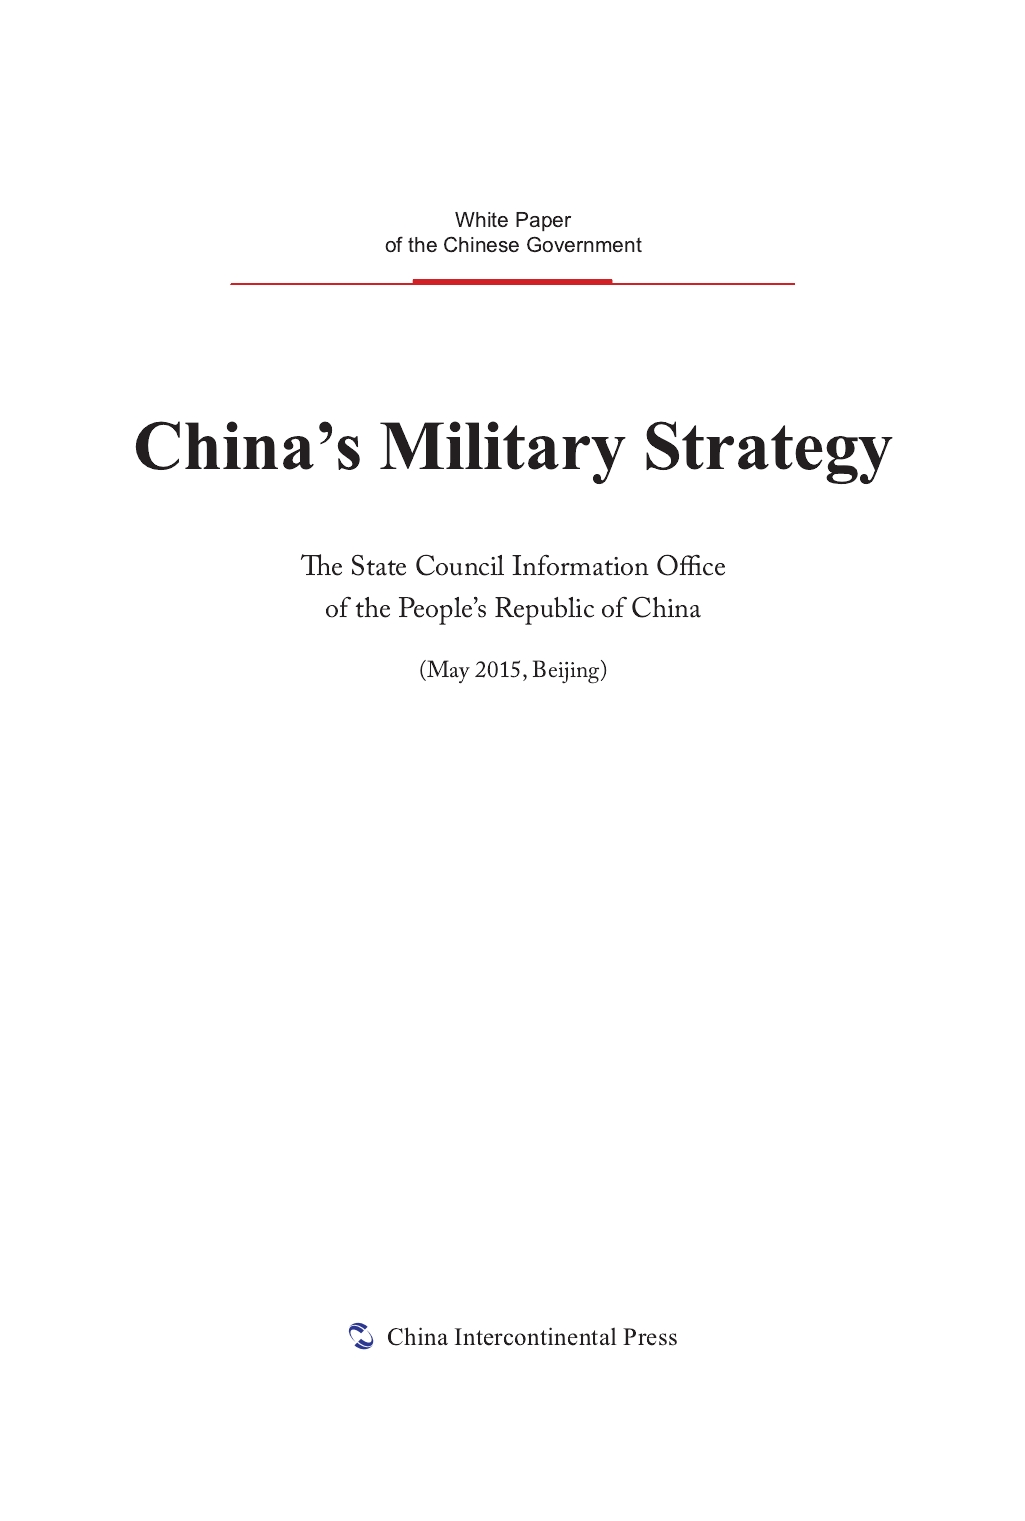 China's Military Strategy